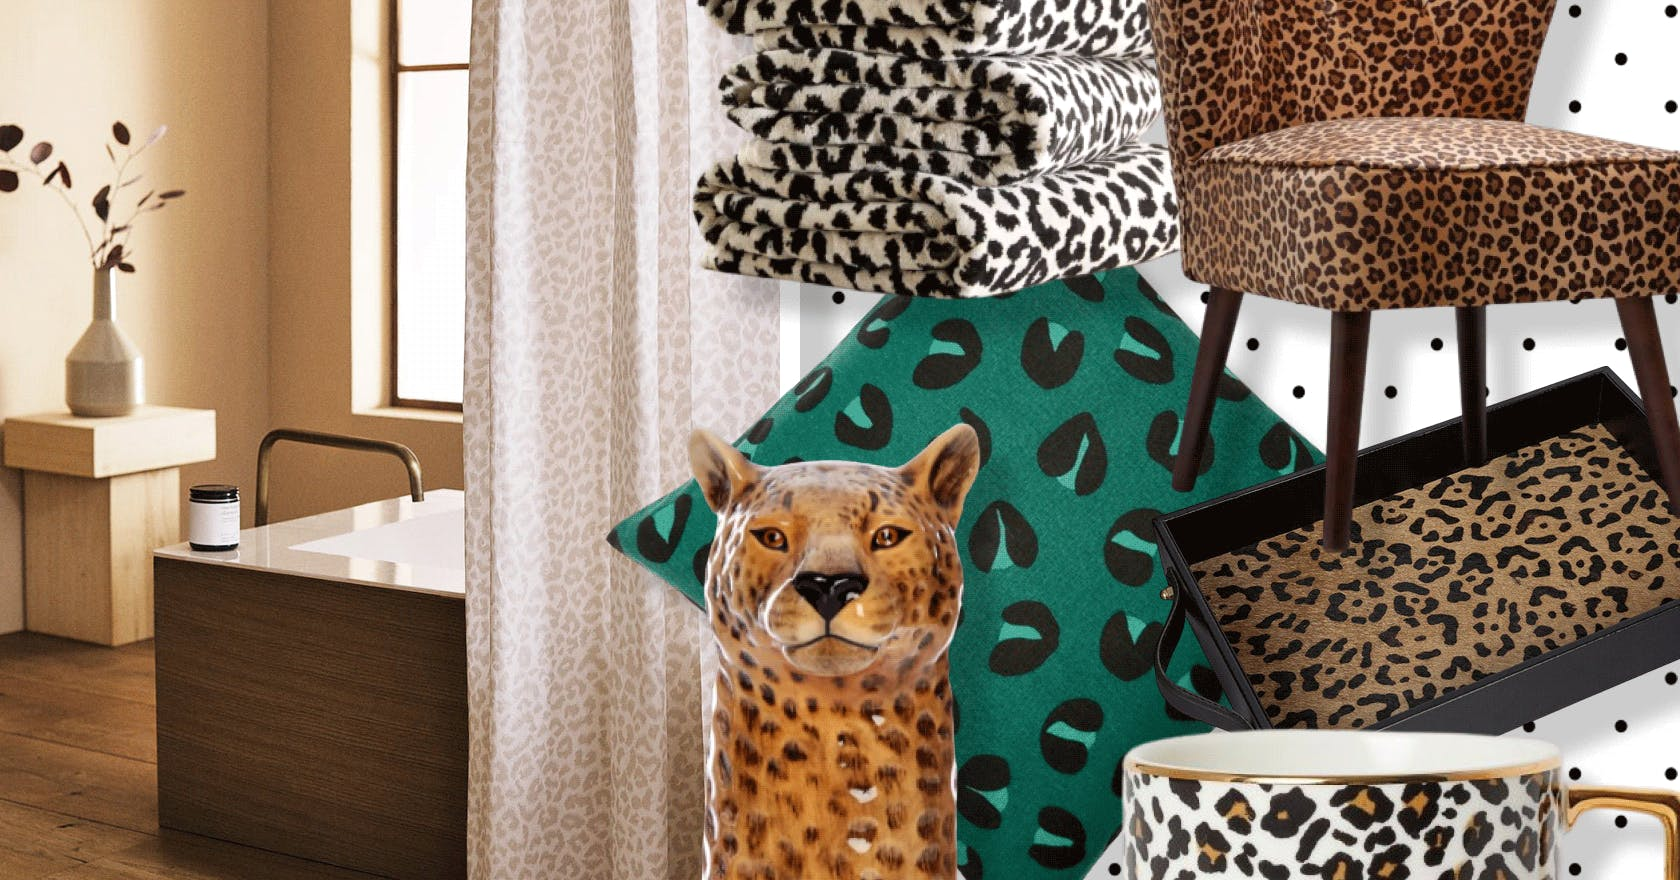 11 leopard print homeware pieces to make this season's trend yours